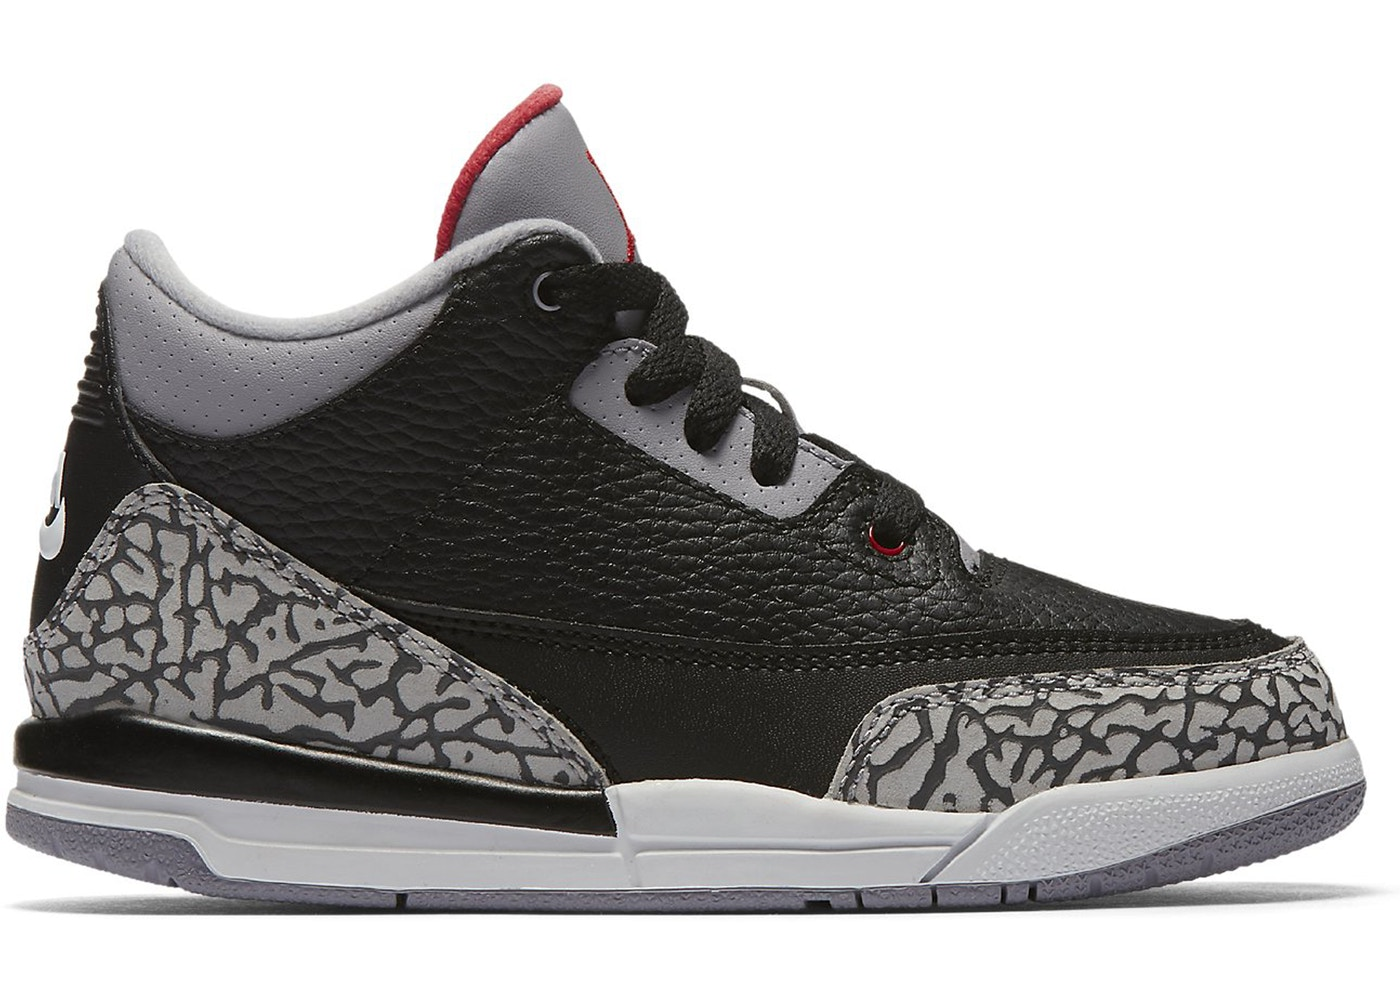 huge discount b6b3a 38e47 Jordan 3 Retro Black Cement 2018 (PS)